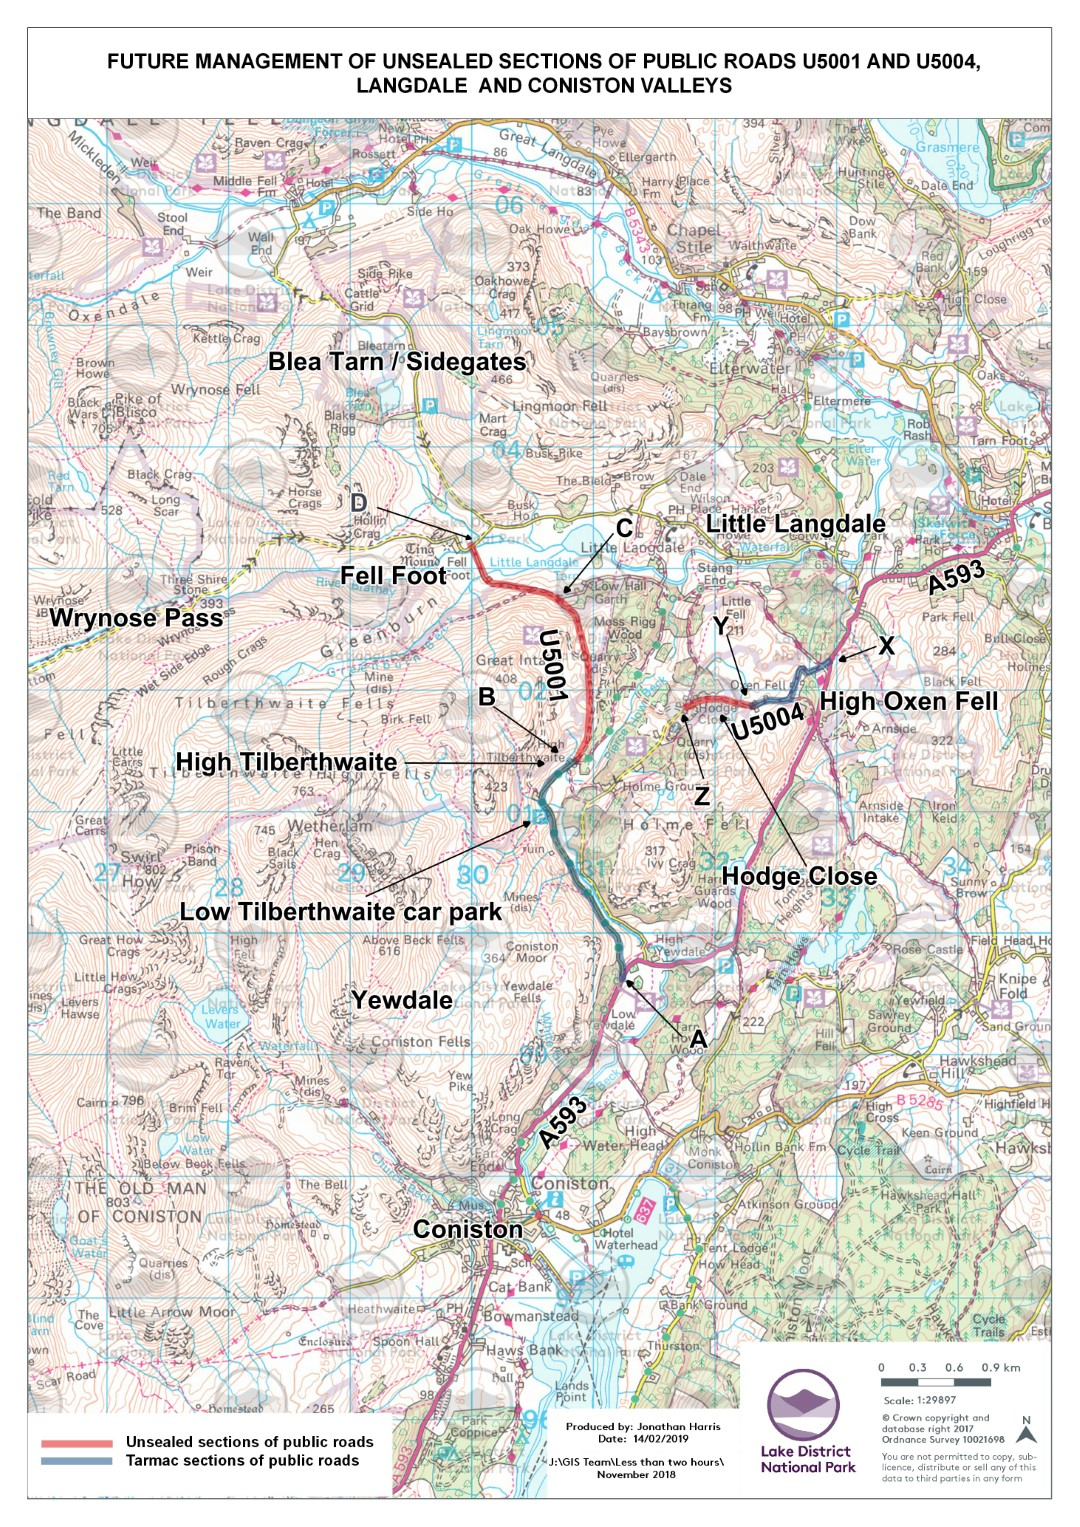 """<span style=""""color: #ff0000; font-size: 14pt;""""><strong>This questionnaire is only for the unsealed section of this road between High Tilberthwaite and Fell Foot, shownB-C-D on this map, and called 'Tilberthwaite Road' from now on.<br><br><span style=""""color: #000000; font-size: 12pt;"""">There is a separate questionnaire (<a href=""""https://www.surveymonkey.co.uk/r/highoxenfell"""" rel=""""nofollow"""" target=""""_blank"""">opens in new window</a>) for the High Oxen Fell road (X-Y)<br></span><br><span style=""""color: #000000;"""">After looking at the map and reading the briefing note, click 'NEXT' to start the survey</span><br></strong></span>"""